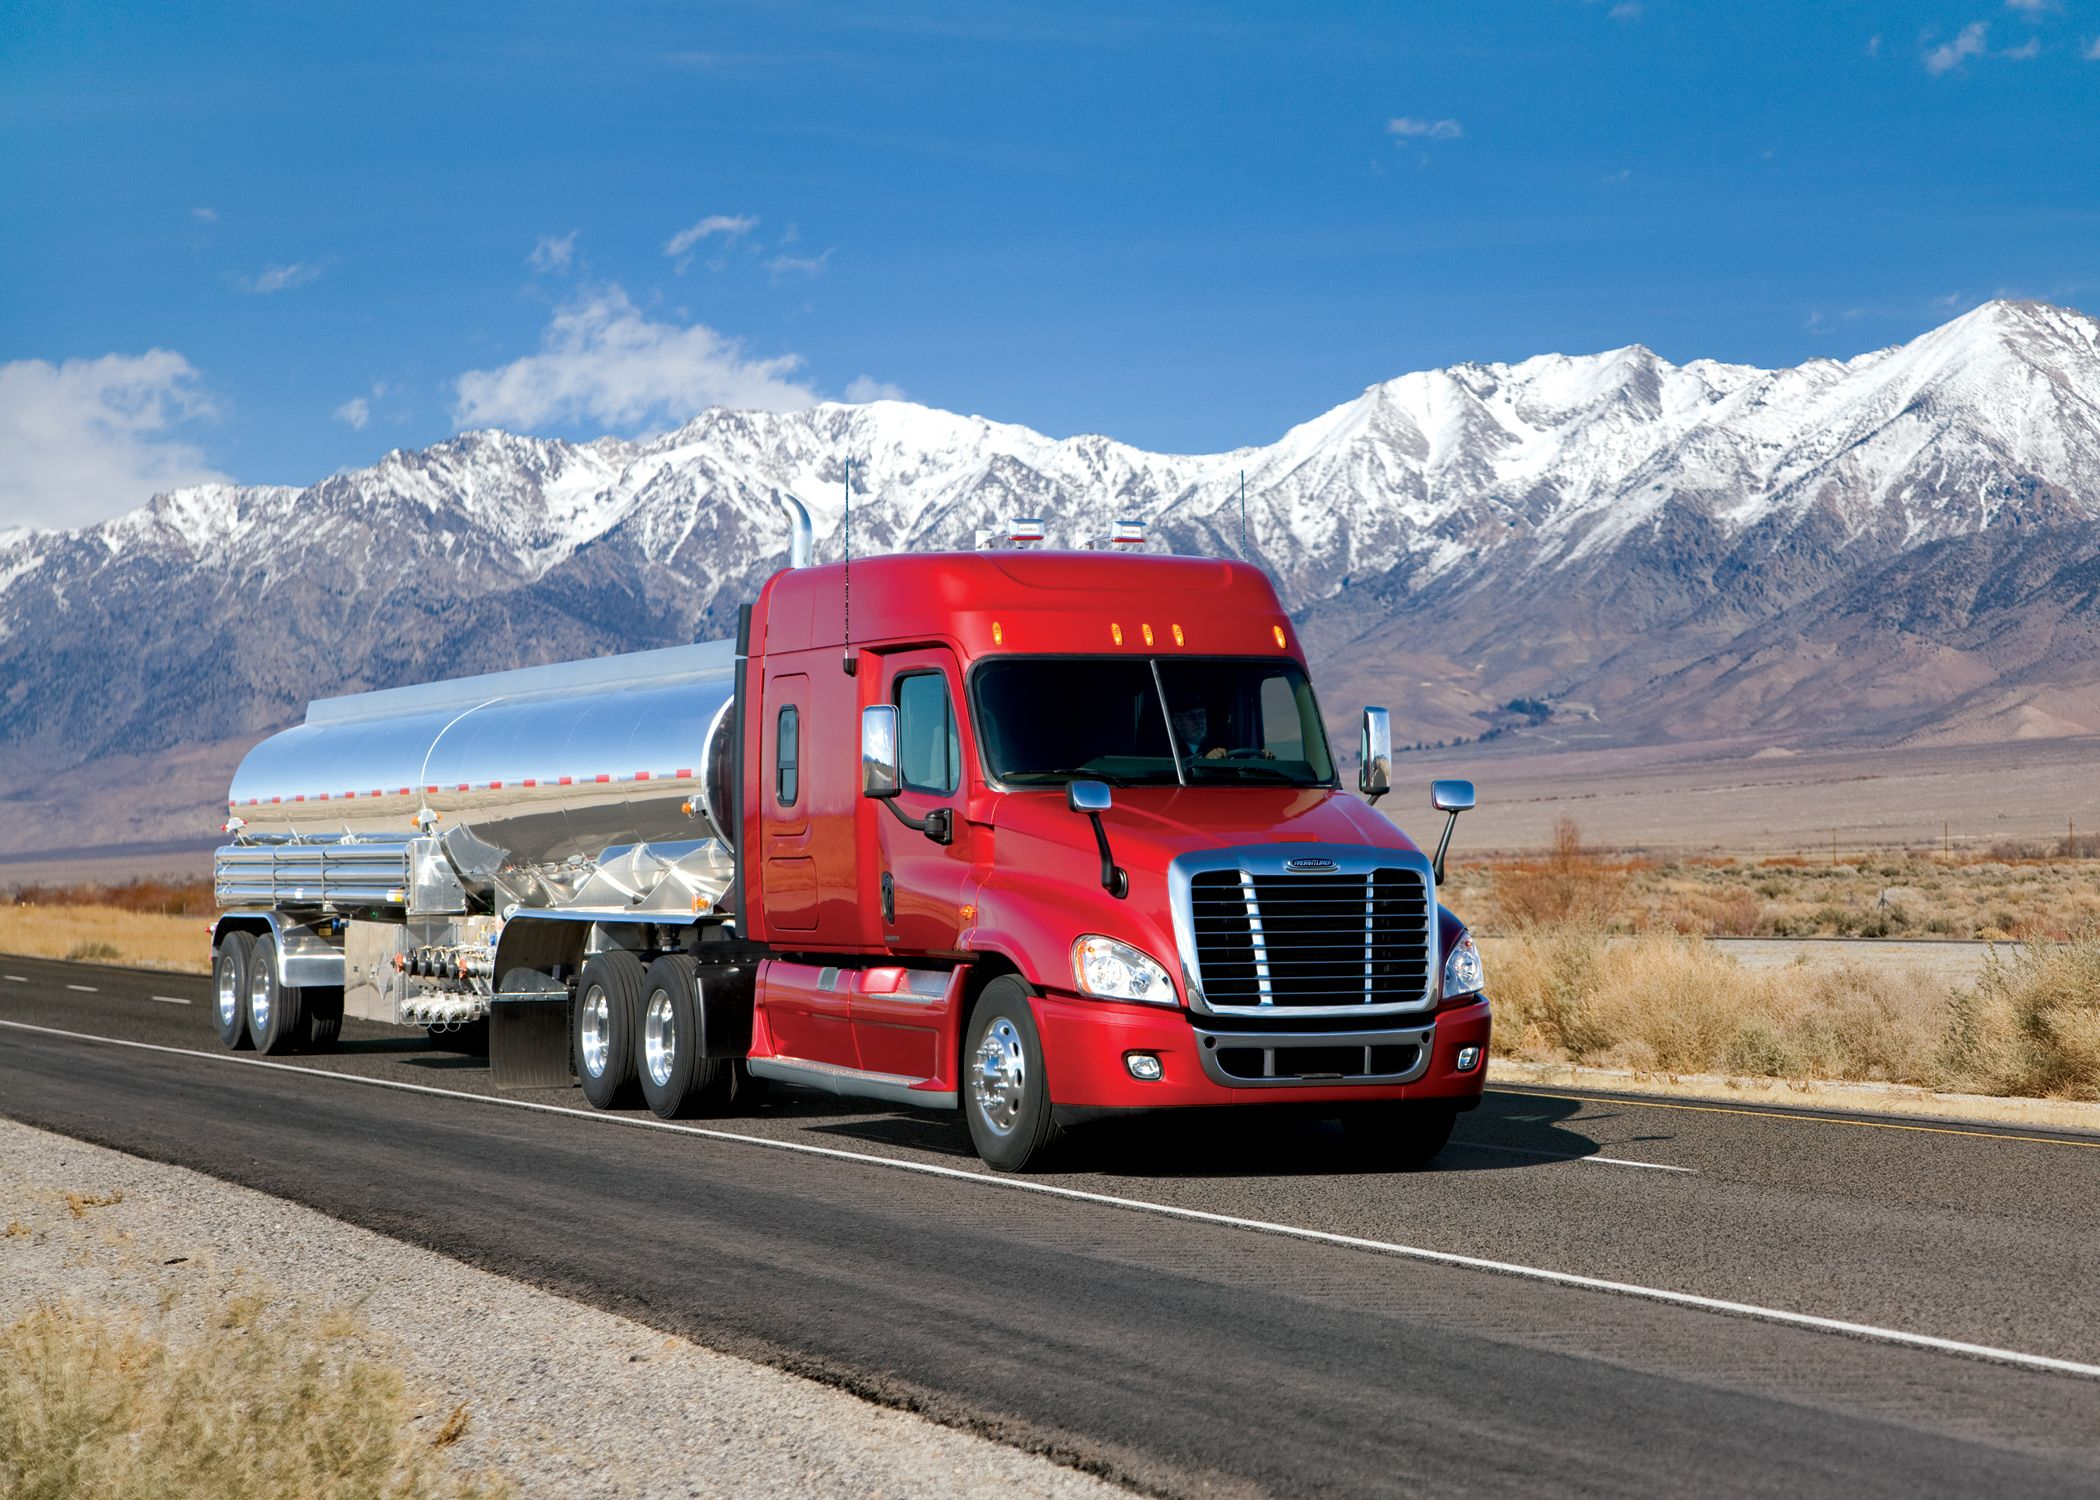 Trucking (With images) Trucks, Big trucks, Freightliner